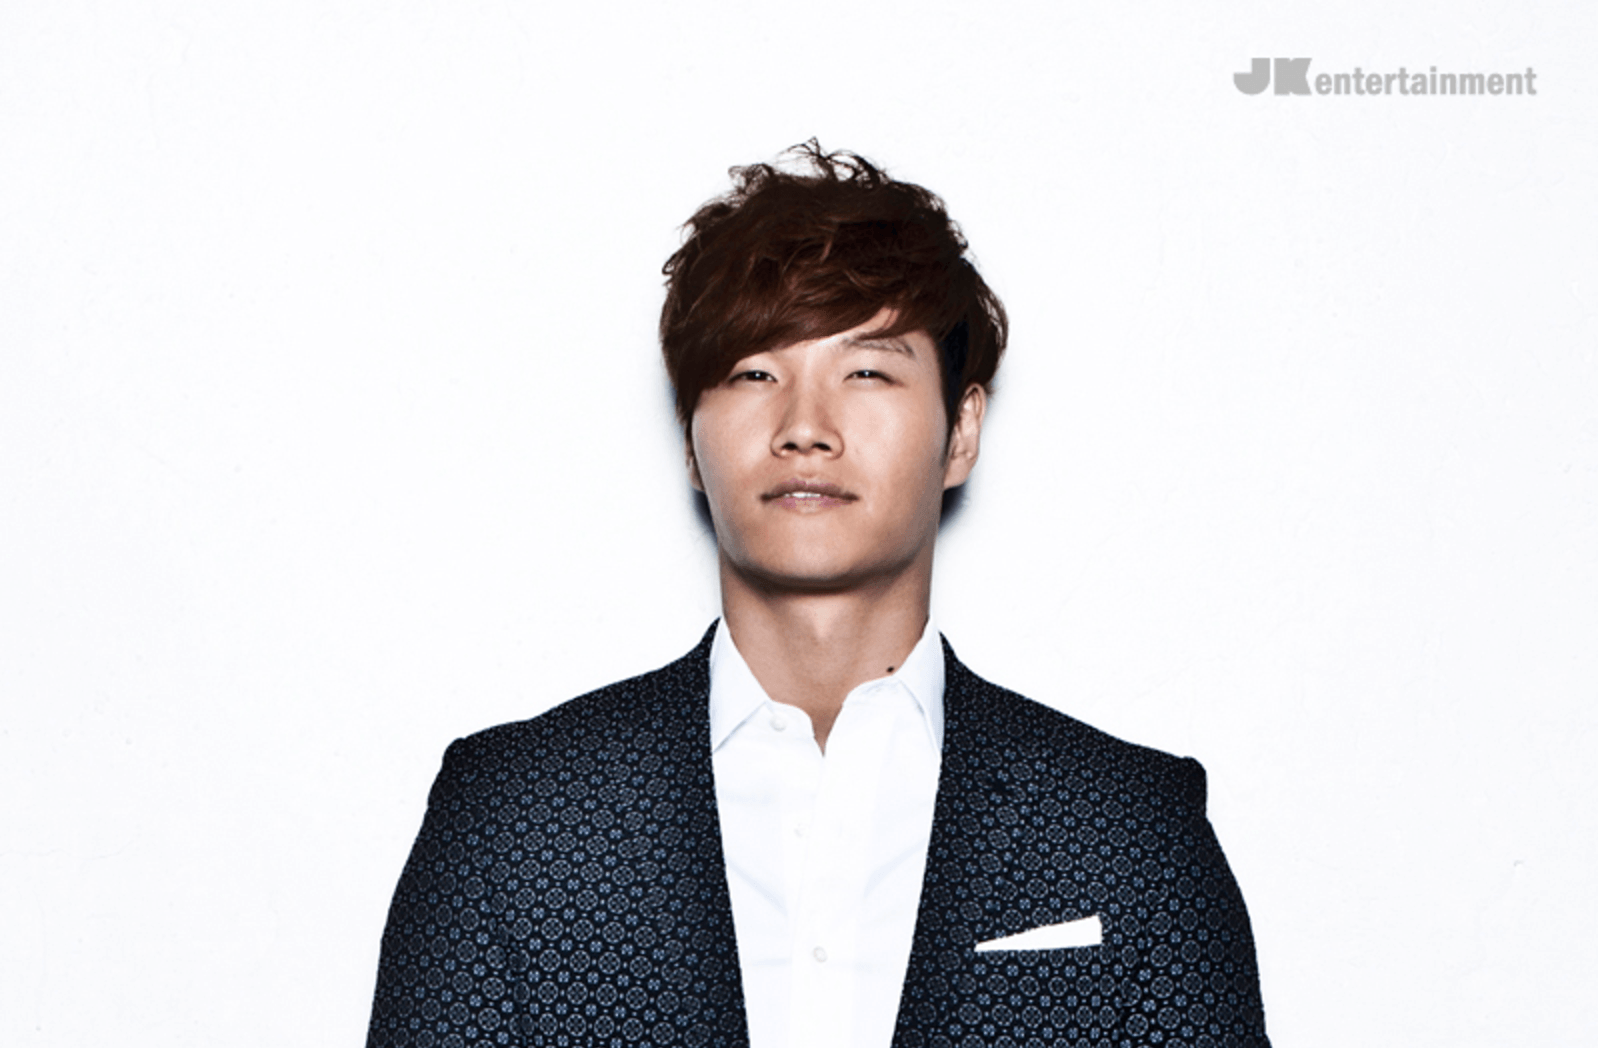 Kim Jong Kook has been reported to earn a high income among entertainers.